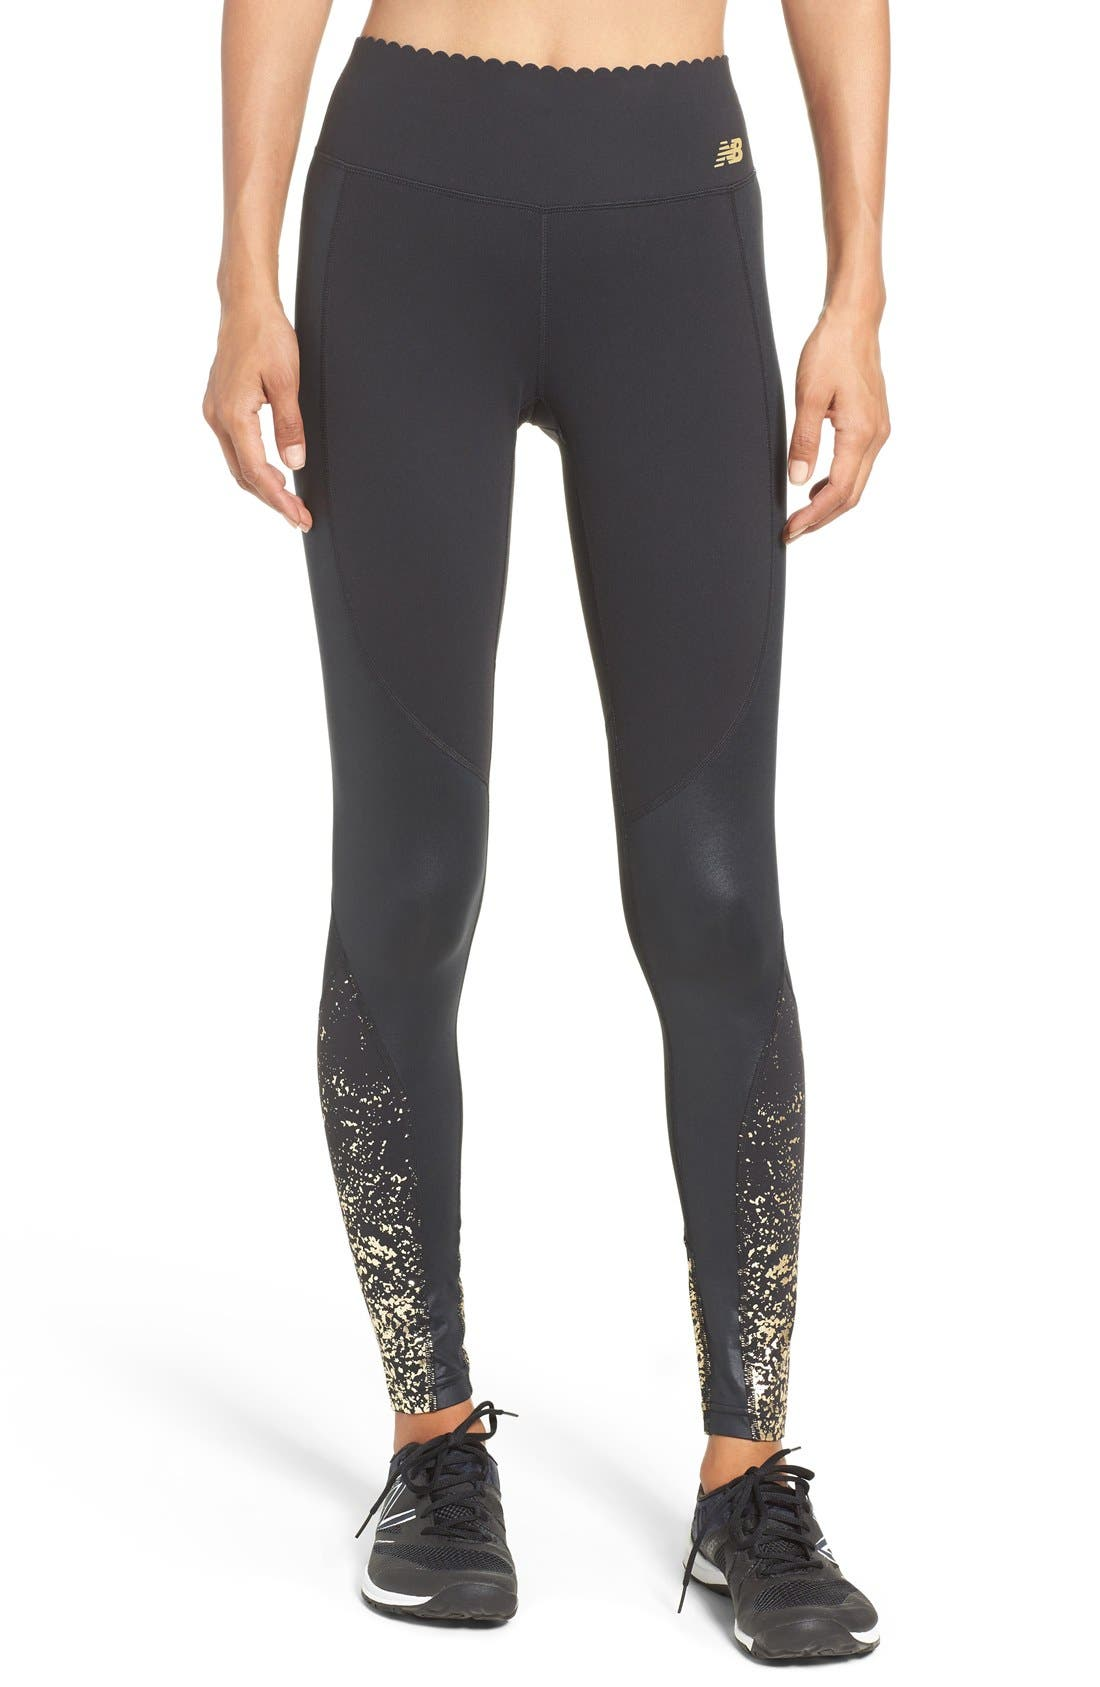 New Balance 'Intensity' Scalloped Waist Tights